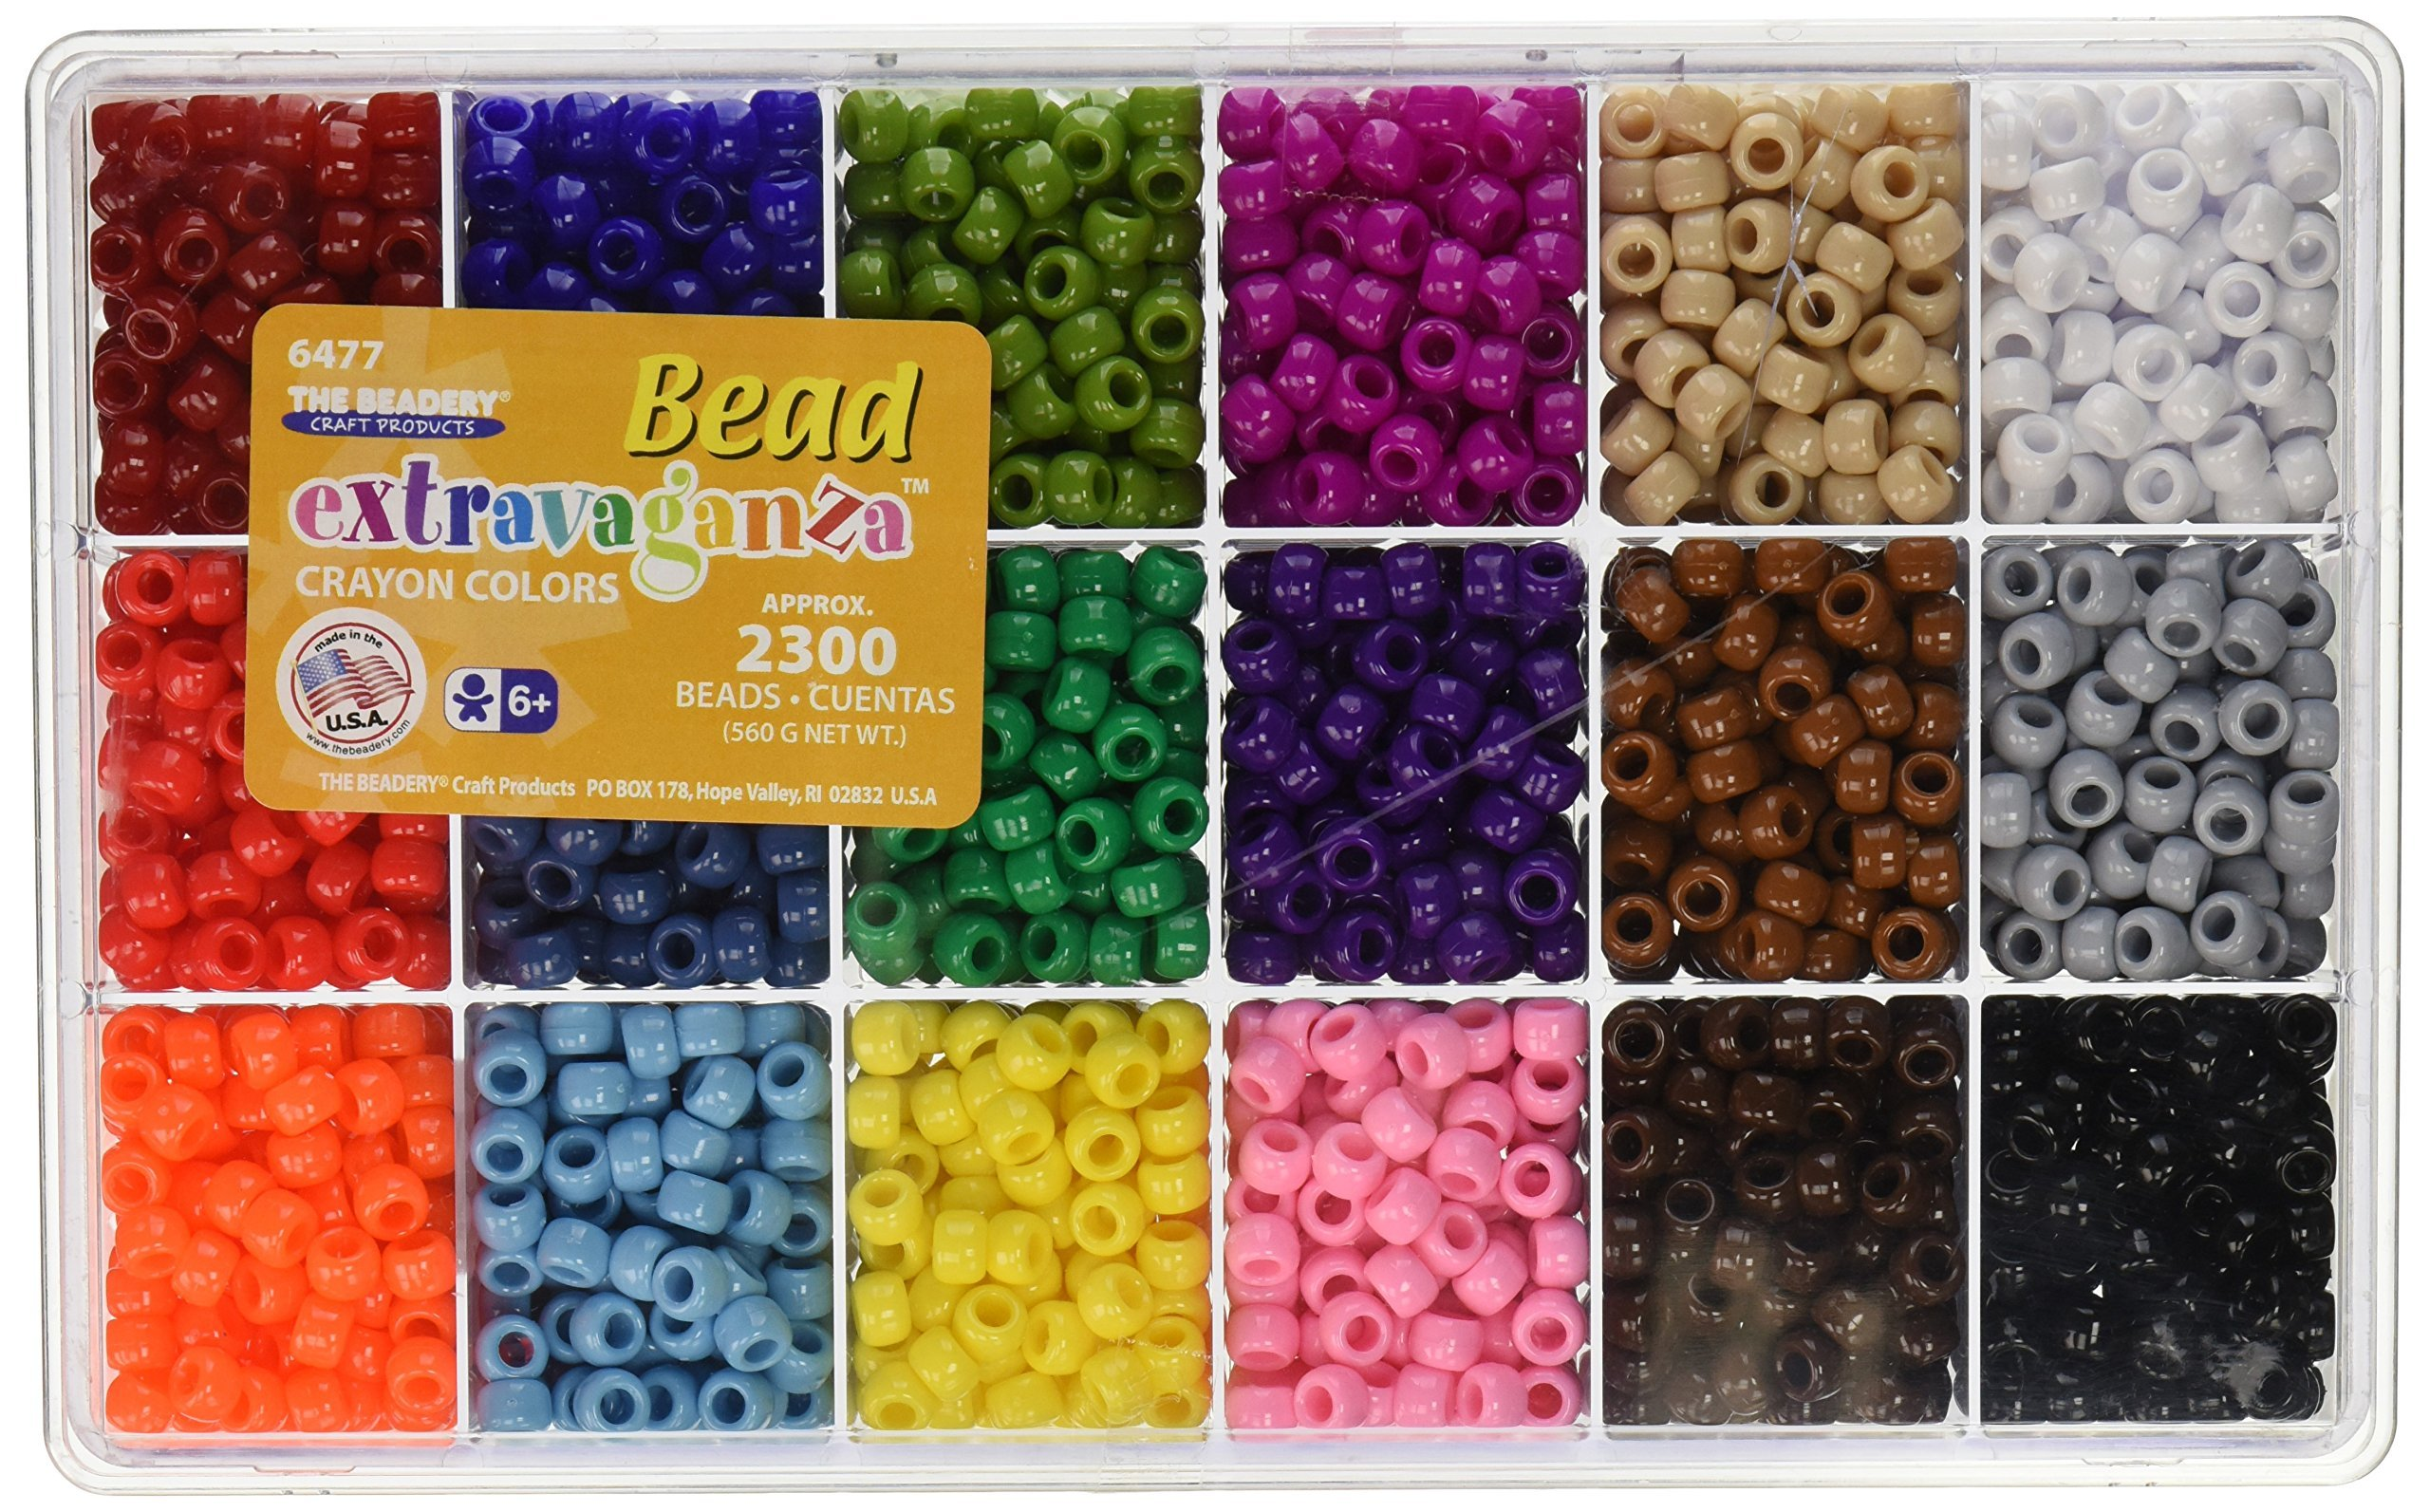 The Beadery Giant Crayon Bead Box - approximately 2300 beads by Beadery